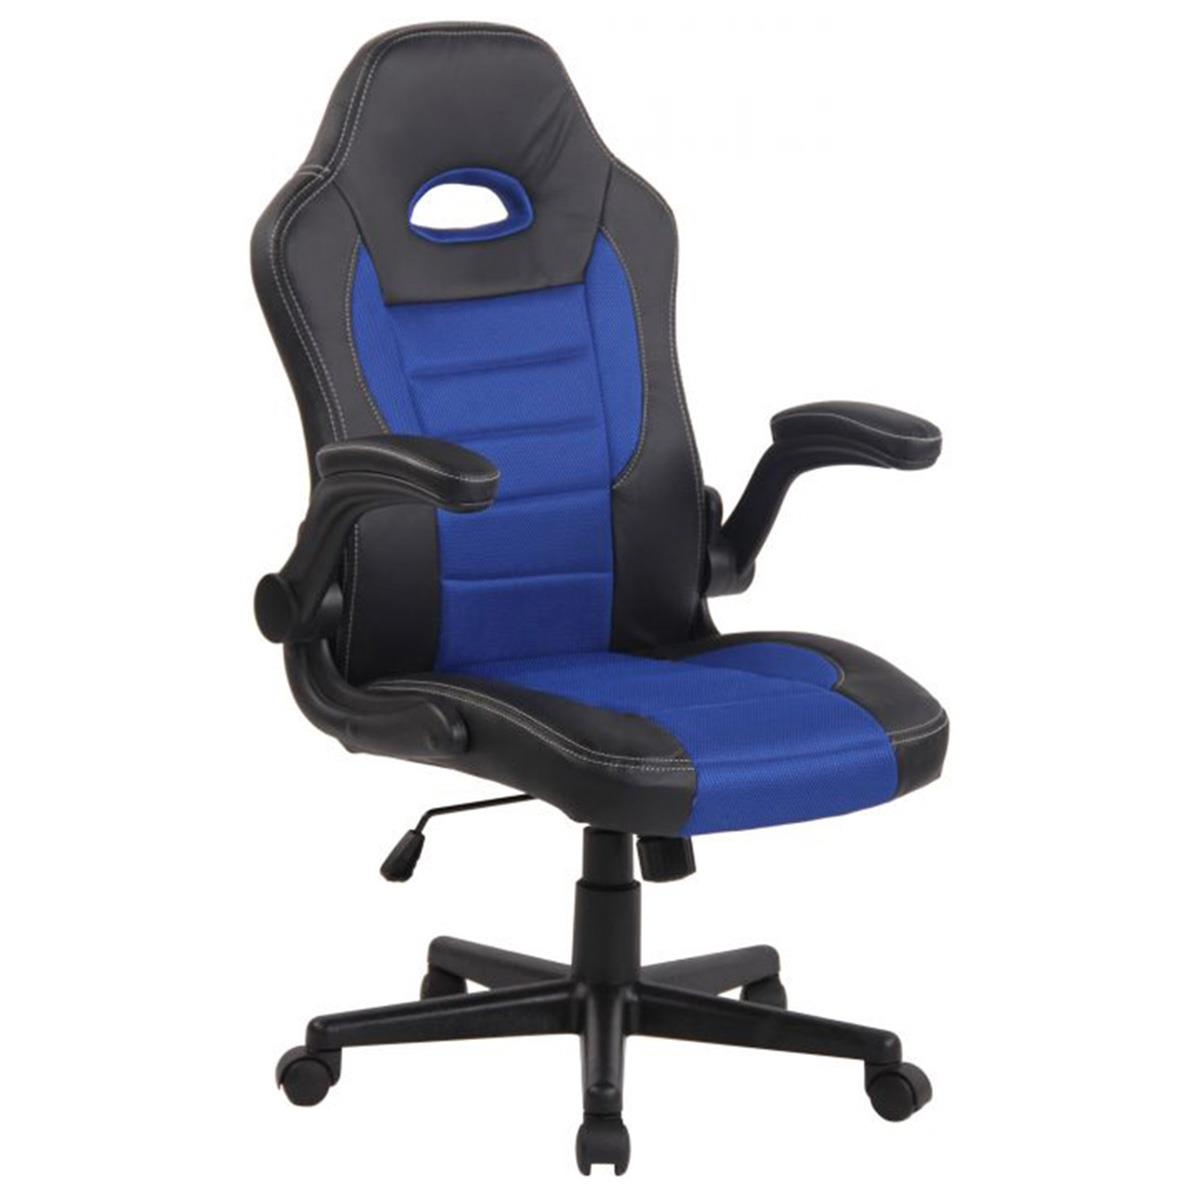 Silla de Ordenador Gaming LOTUS, reposabrazos abatibles, en piel y malla transpirable color azul